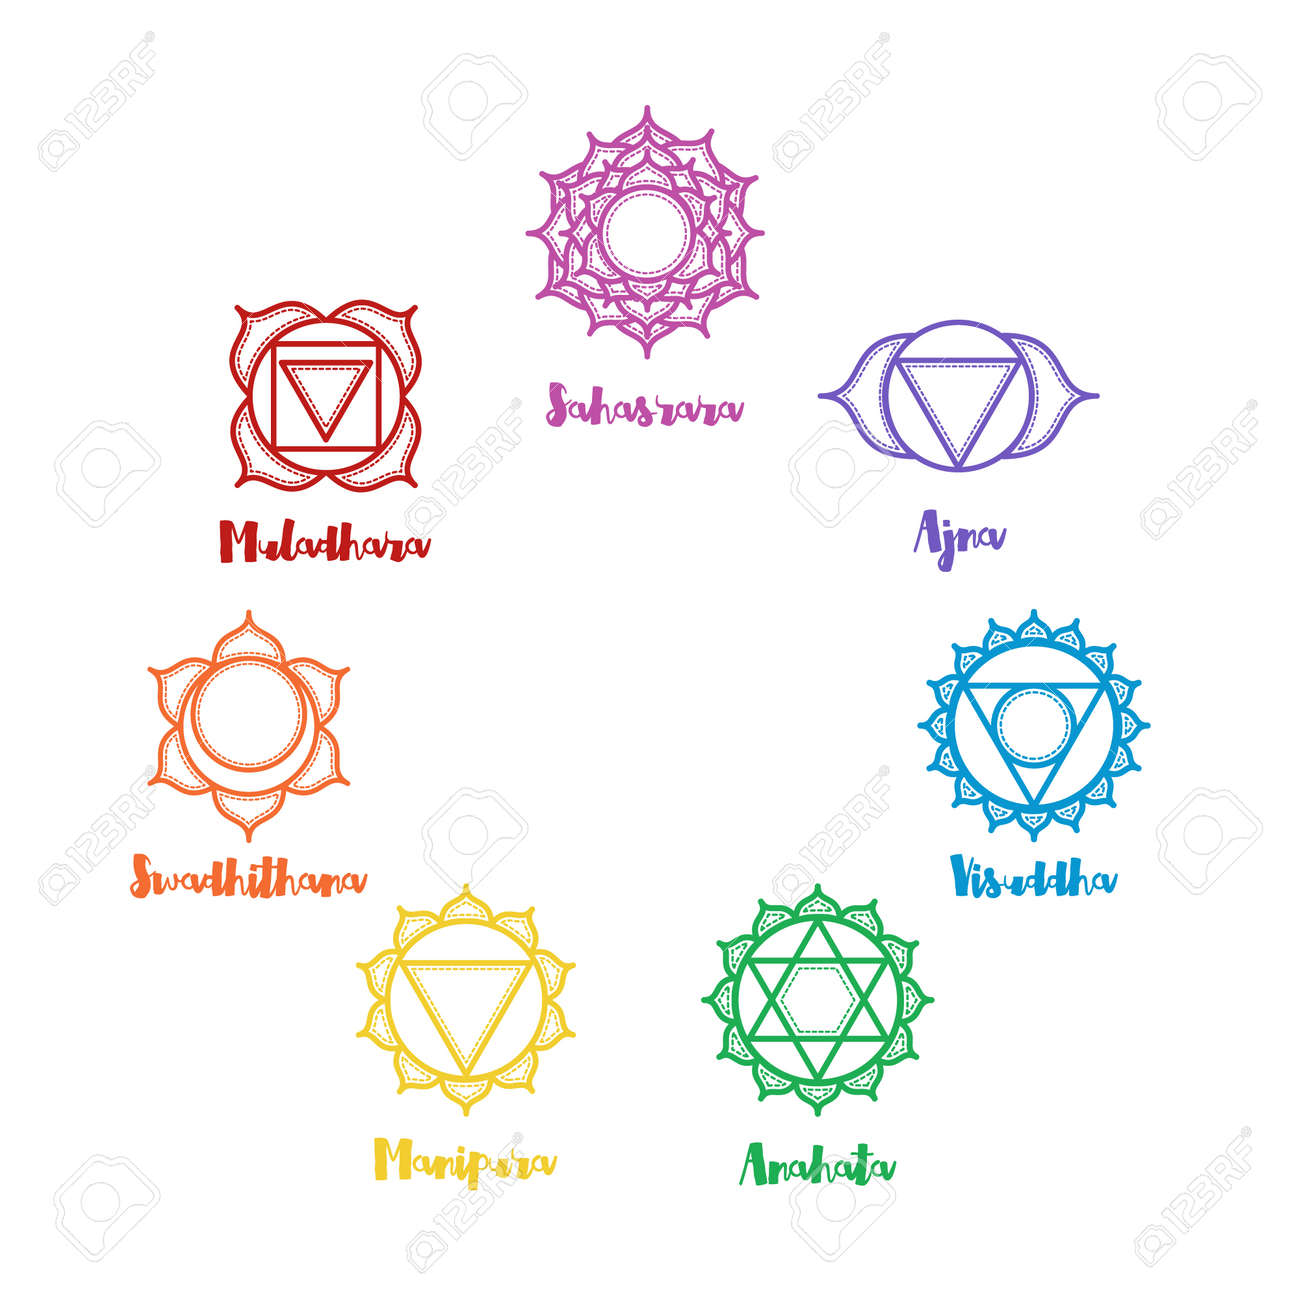 Isolated Indian Ornamental 7 Chakra Icons Set Chakras Used In Hinduism Buddhism And Ayurveda